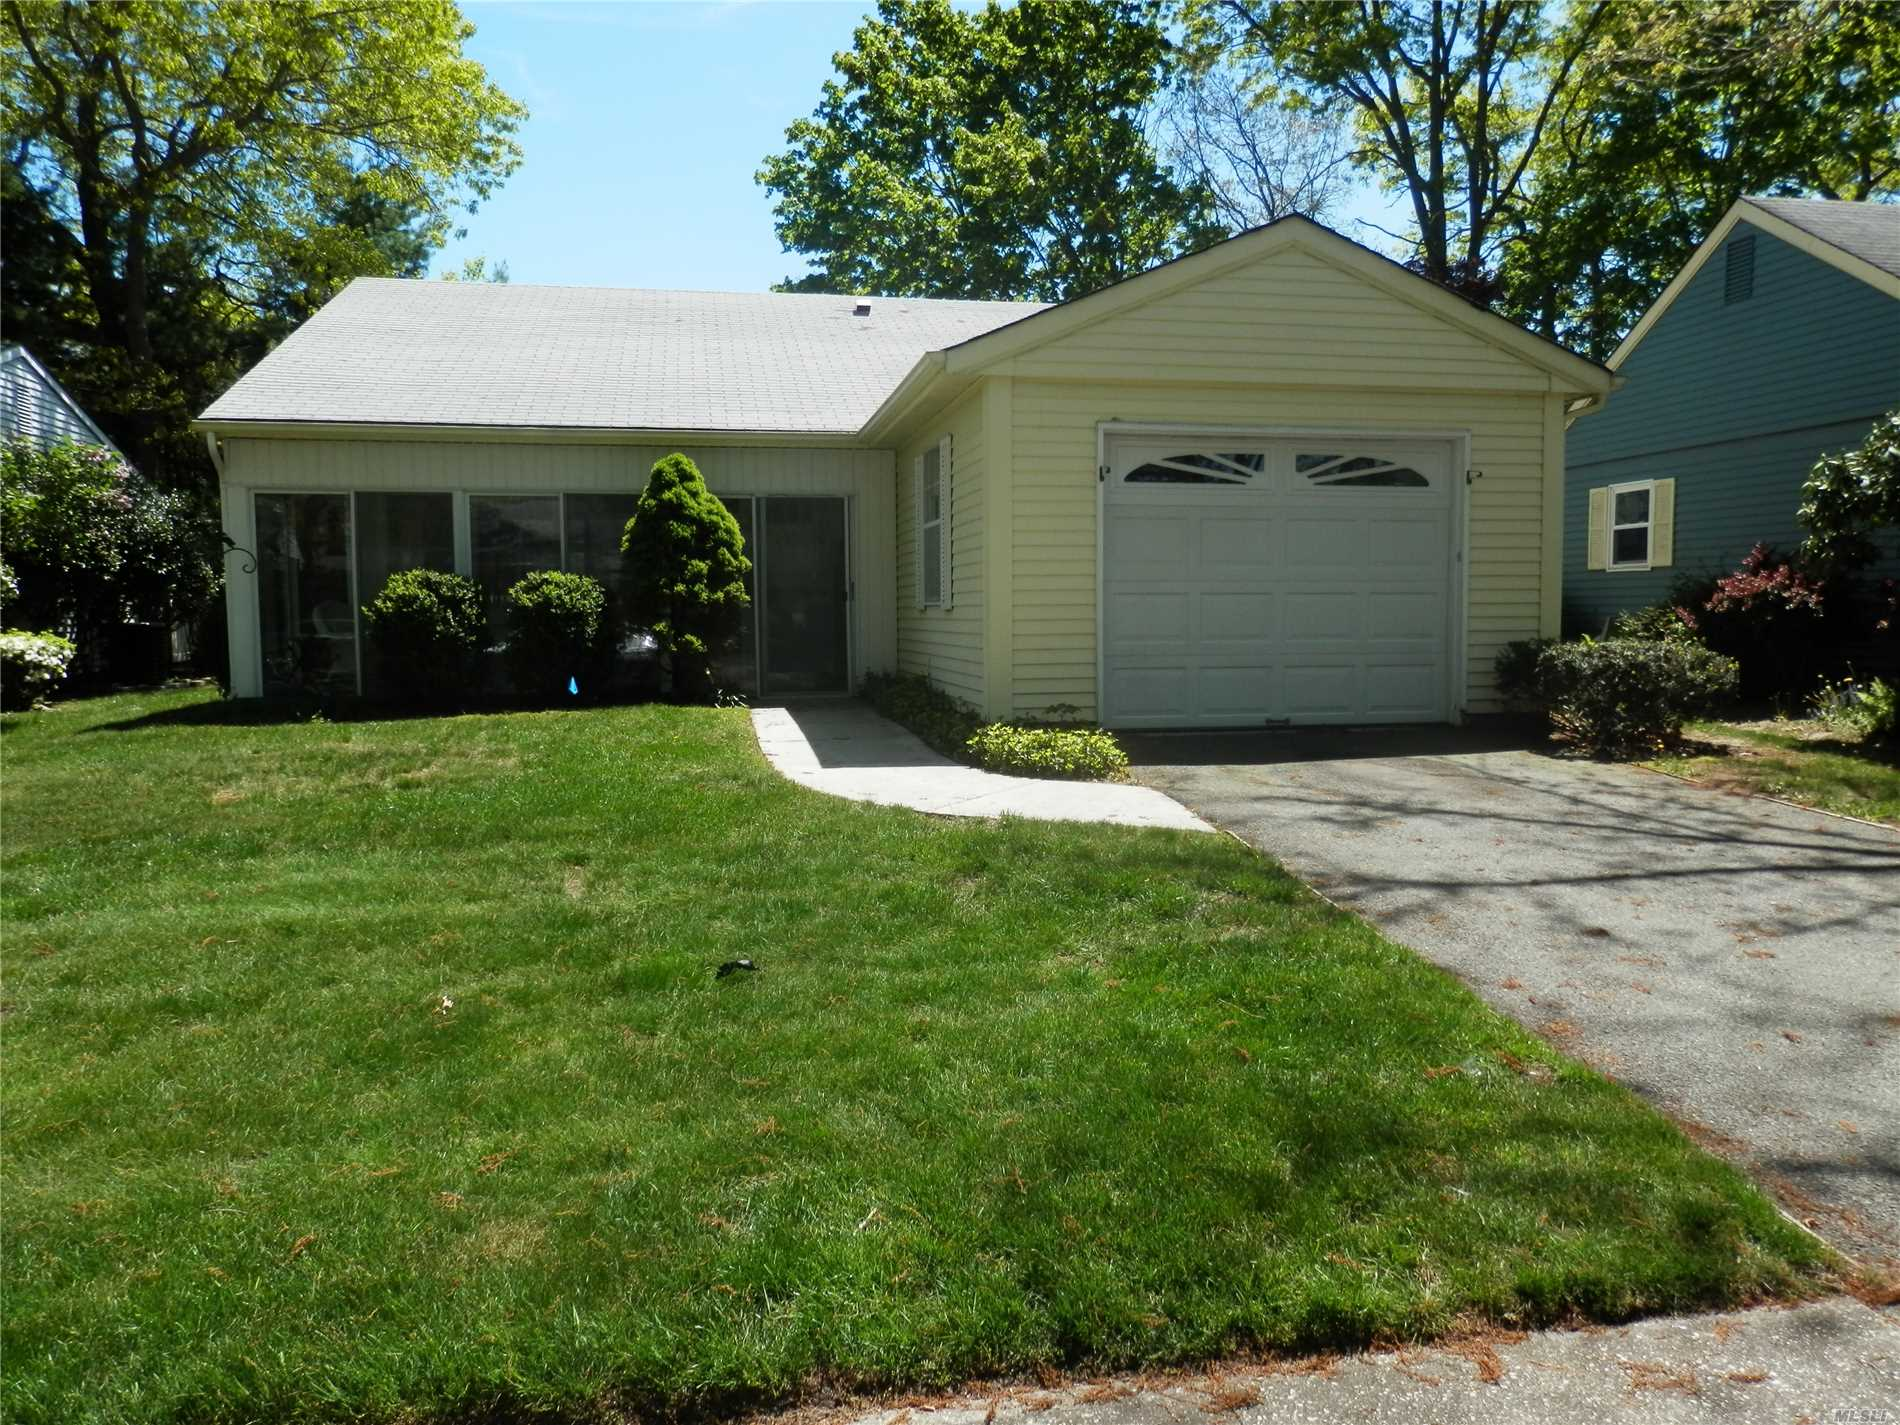 Lovely sunny home in beautiful Leisure Knoll. Closed in front porch and lovely patio to enjoy. Skylight in Kitchen. Enlarged garage with drop down stairs for attic storage. Gated security in evening. Bus service for residents. Many amenities to enjoy. Make this home your own.